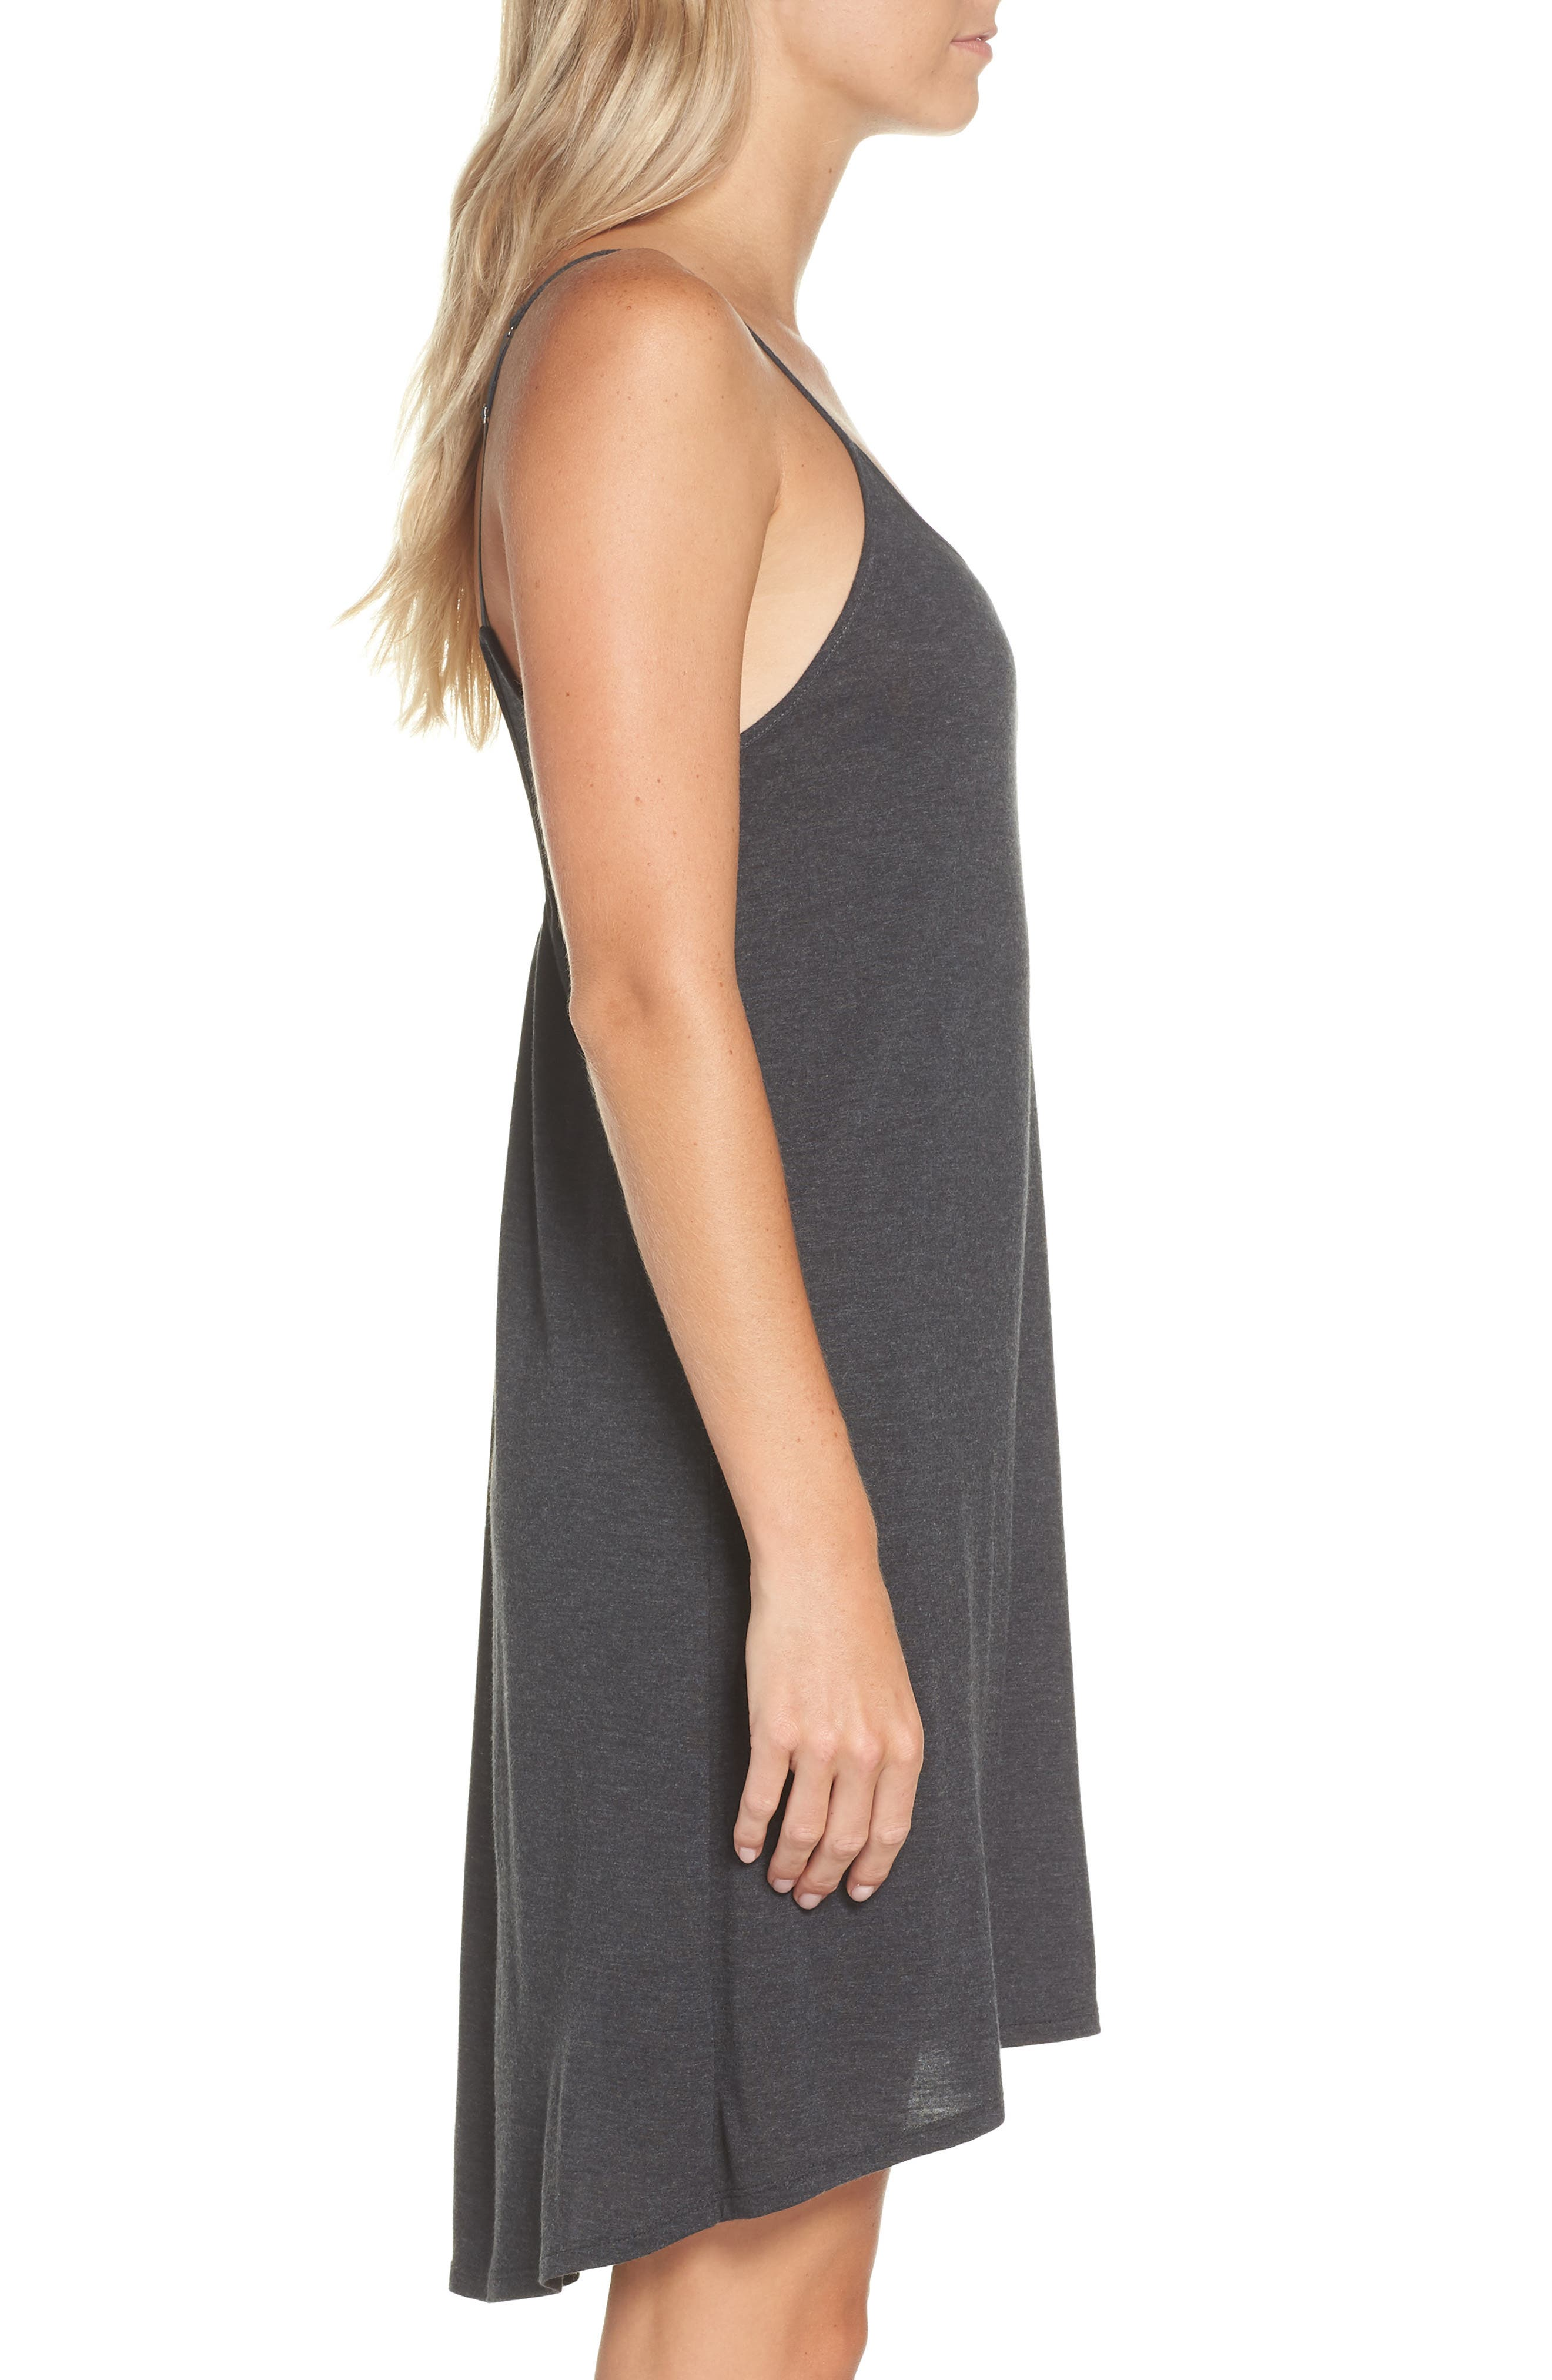 Heather Tees Chemise,                             Alternate thumbnail 3, color,                             HEATHER GRANITE